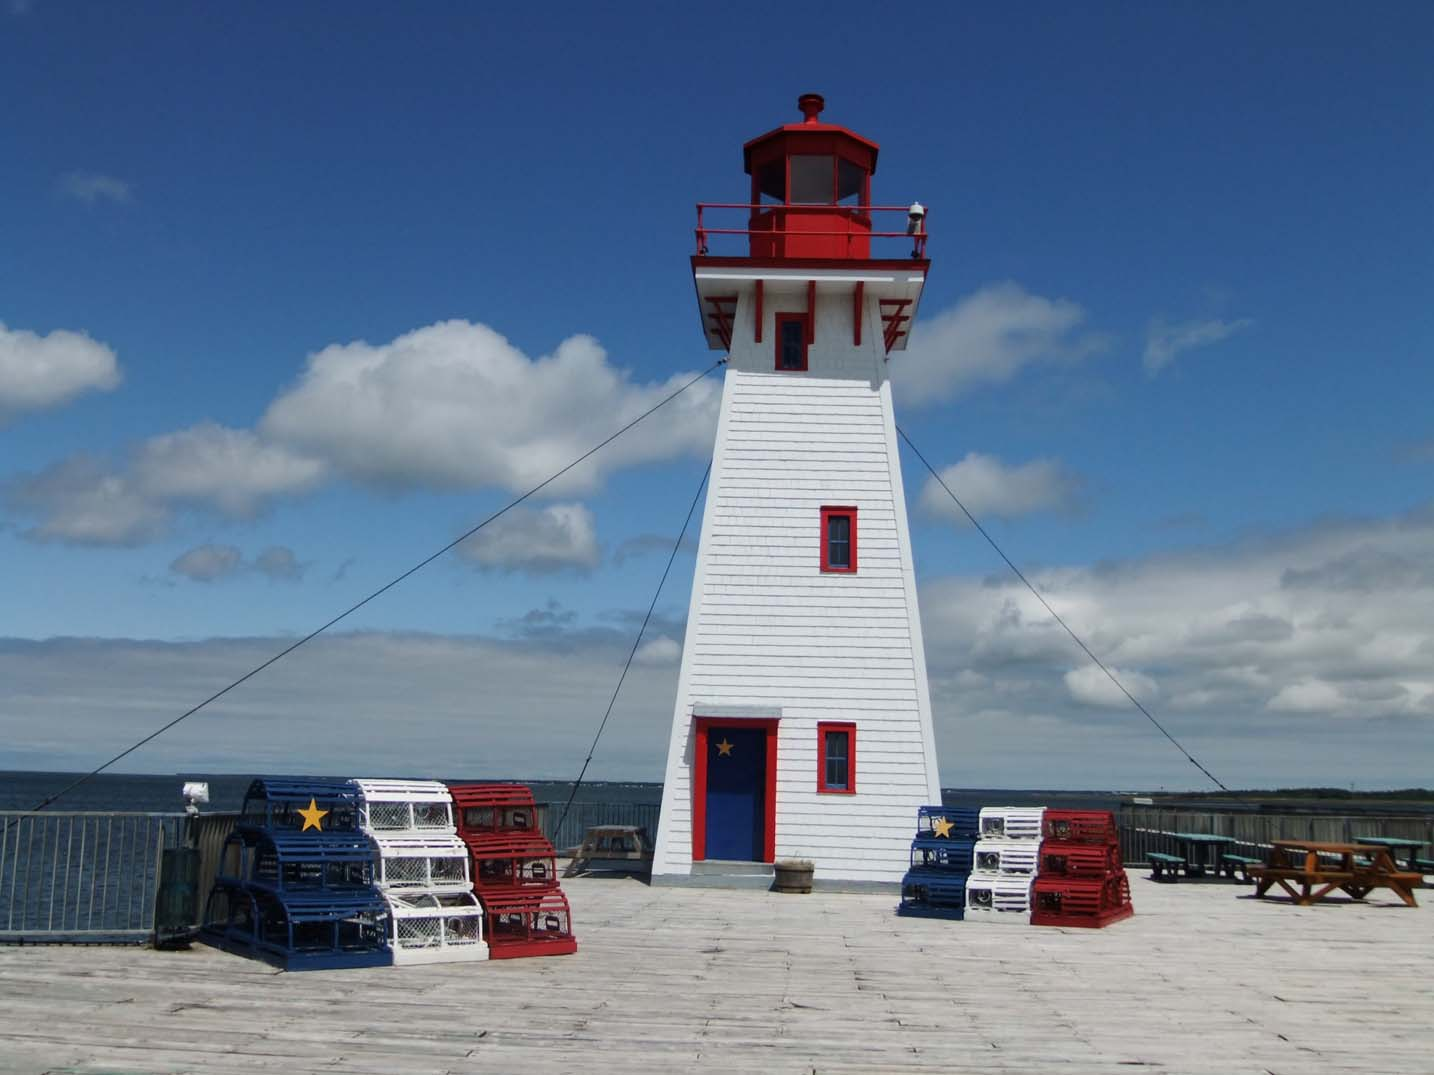 Acadian lighthouse in Shippagan, New Brunswick